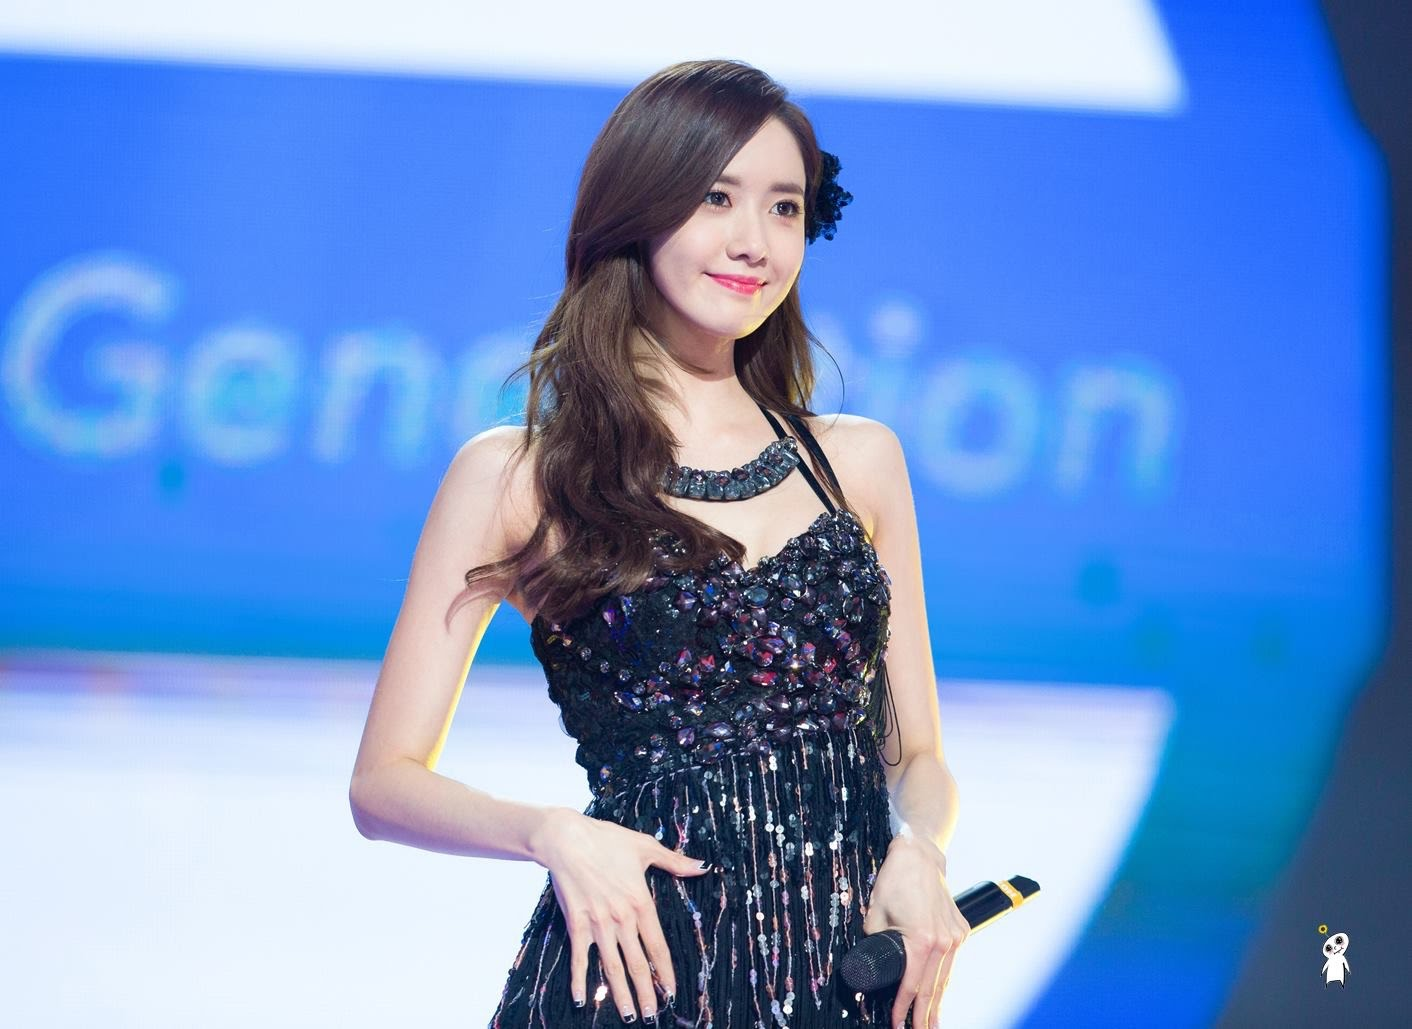 SNSD Artistic Gallery: Yoona Smile On Stage Wallpaper